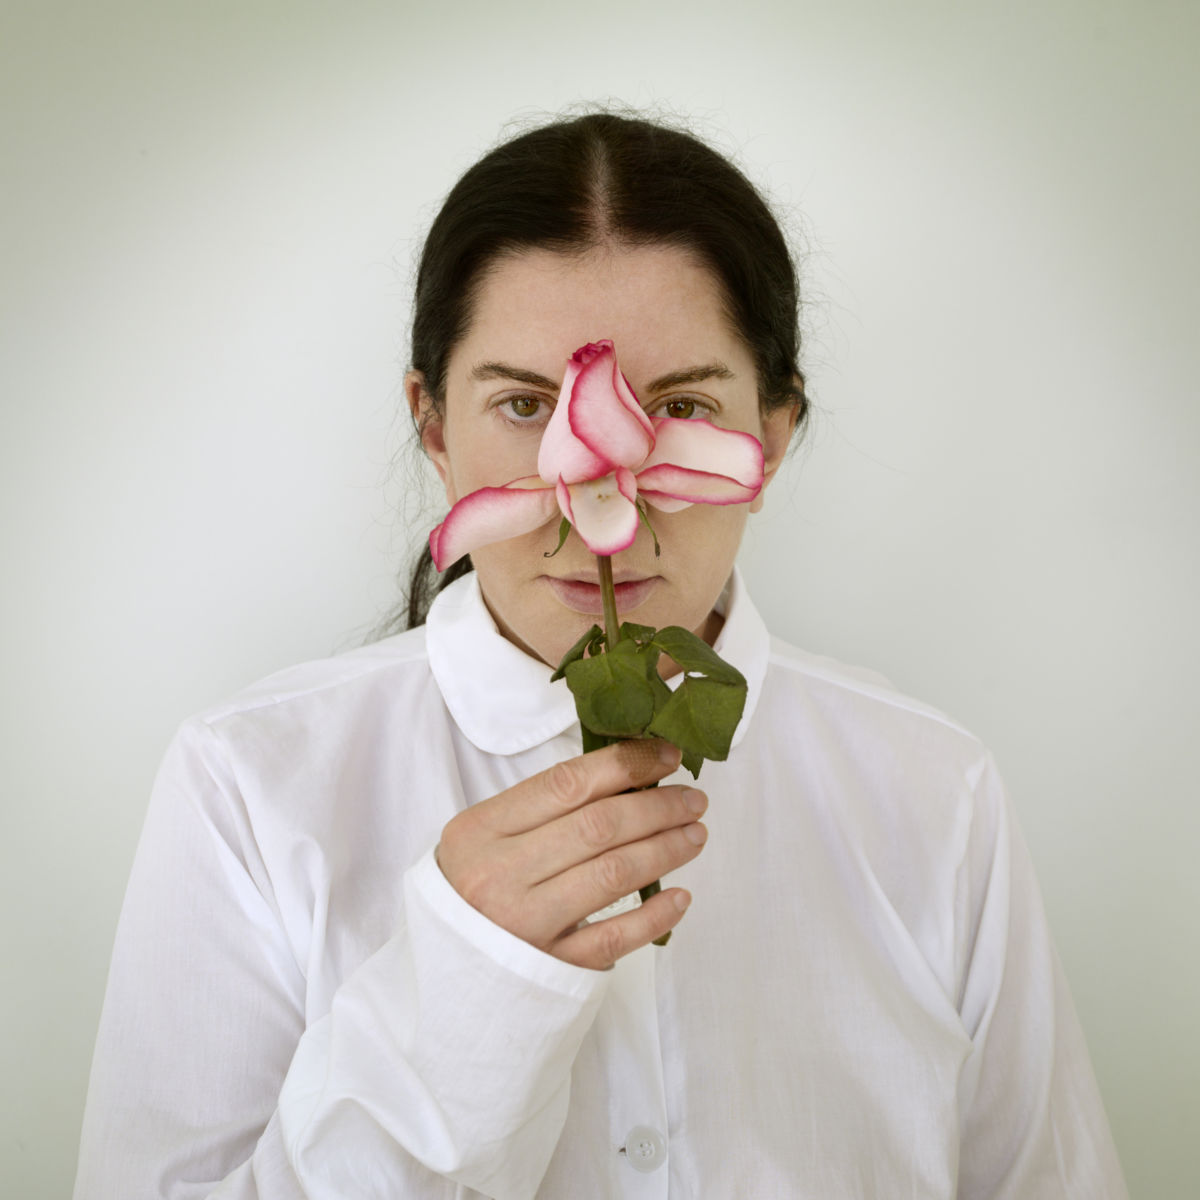 ArtInternational2014-Marina Abramović - Artist Portrait with a Rose, 2013